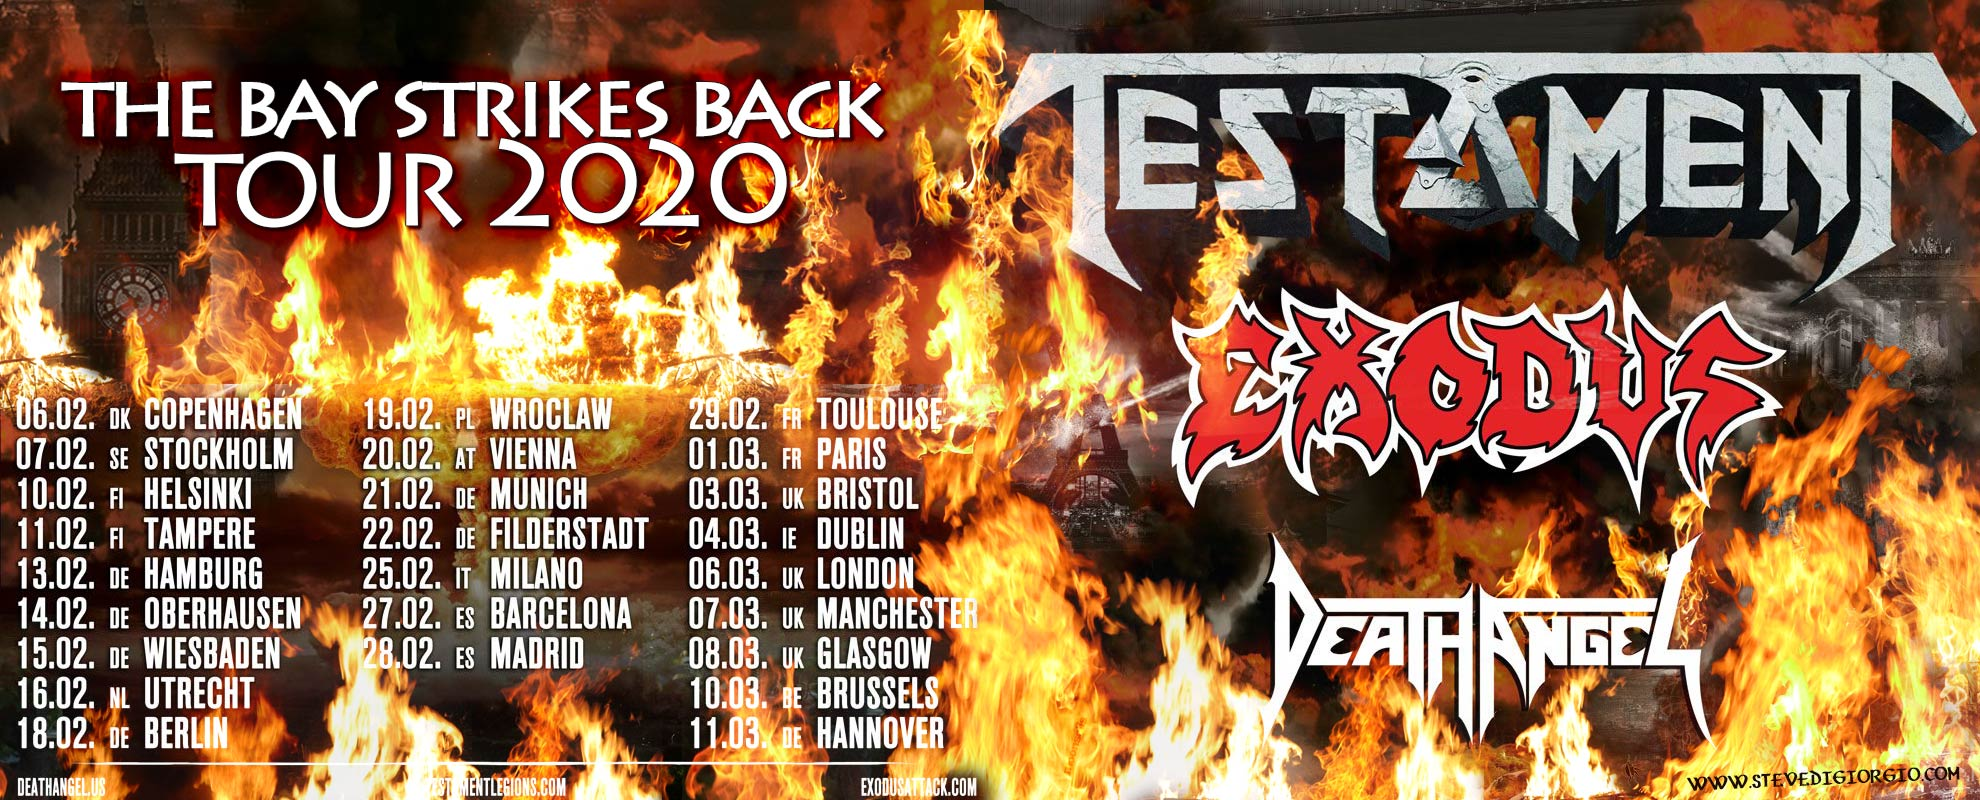 The Bay Strikes Back Tour 2020 - Testament, Exodus and Death Angel